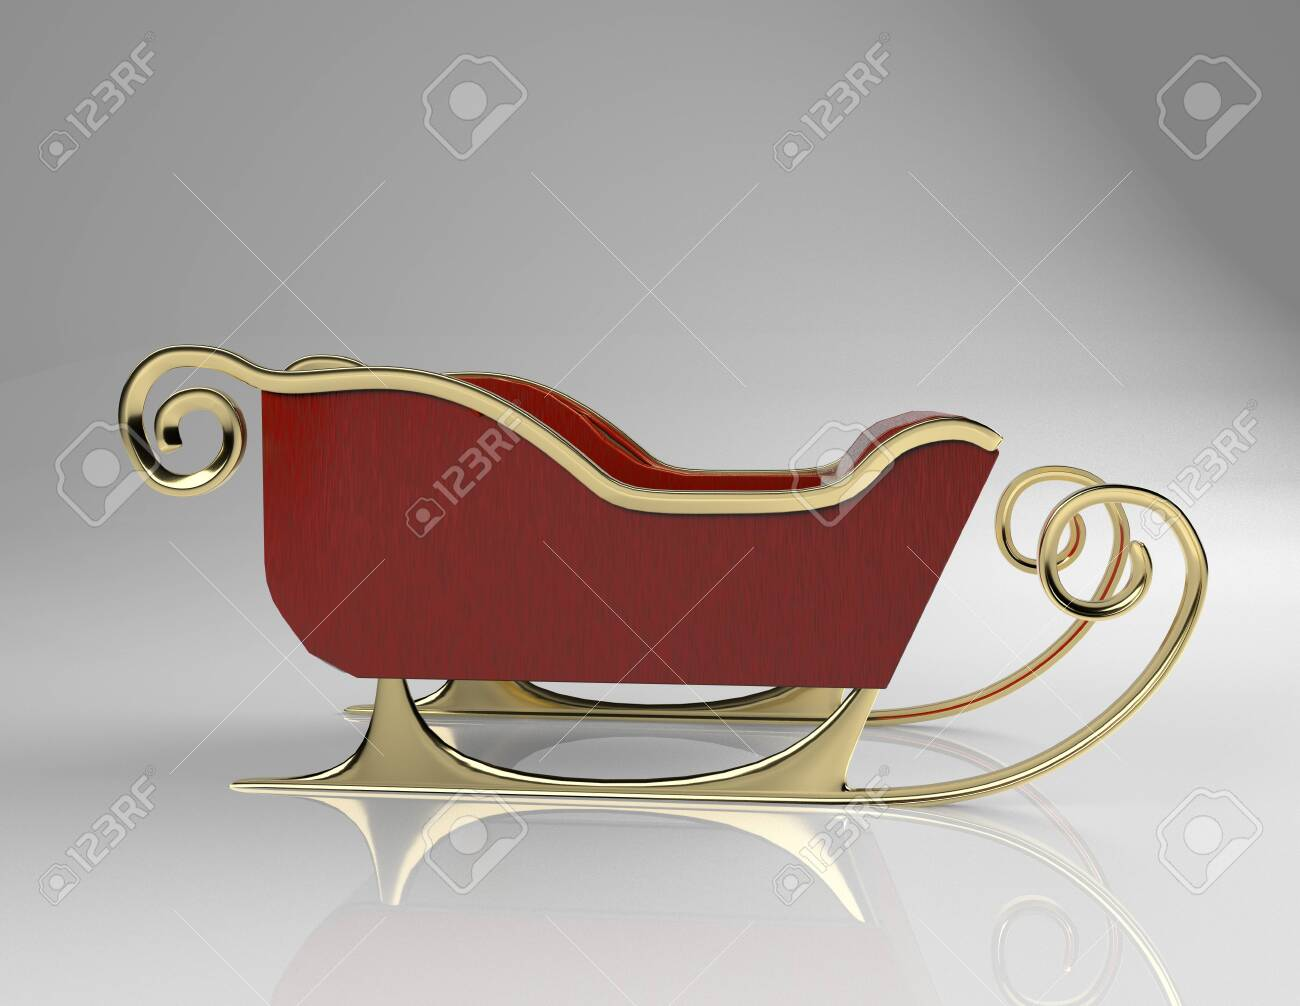 The christmas sliegh,3d render. - 137047402